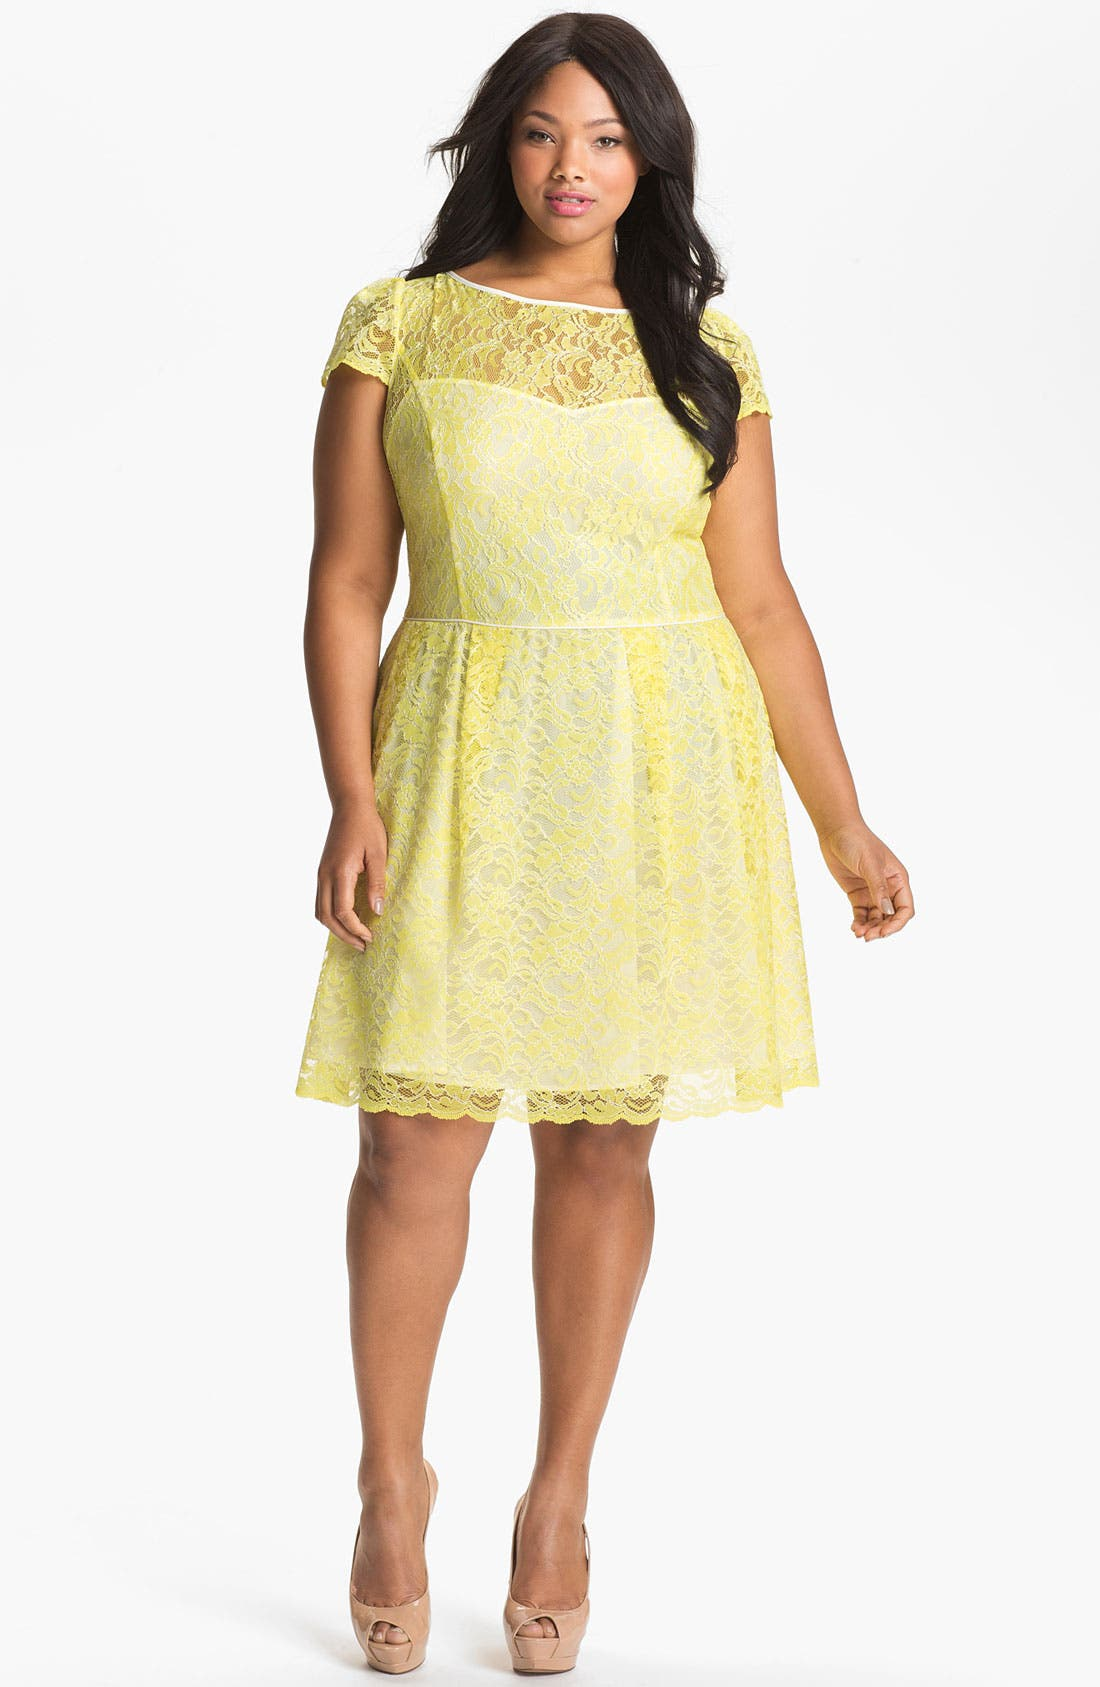 Main Image - A.B.S. by Allen Schwartz Lace Fit & Flare Dress (Plus Size) (Online Only)